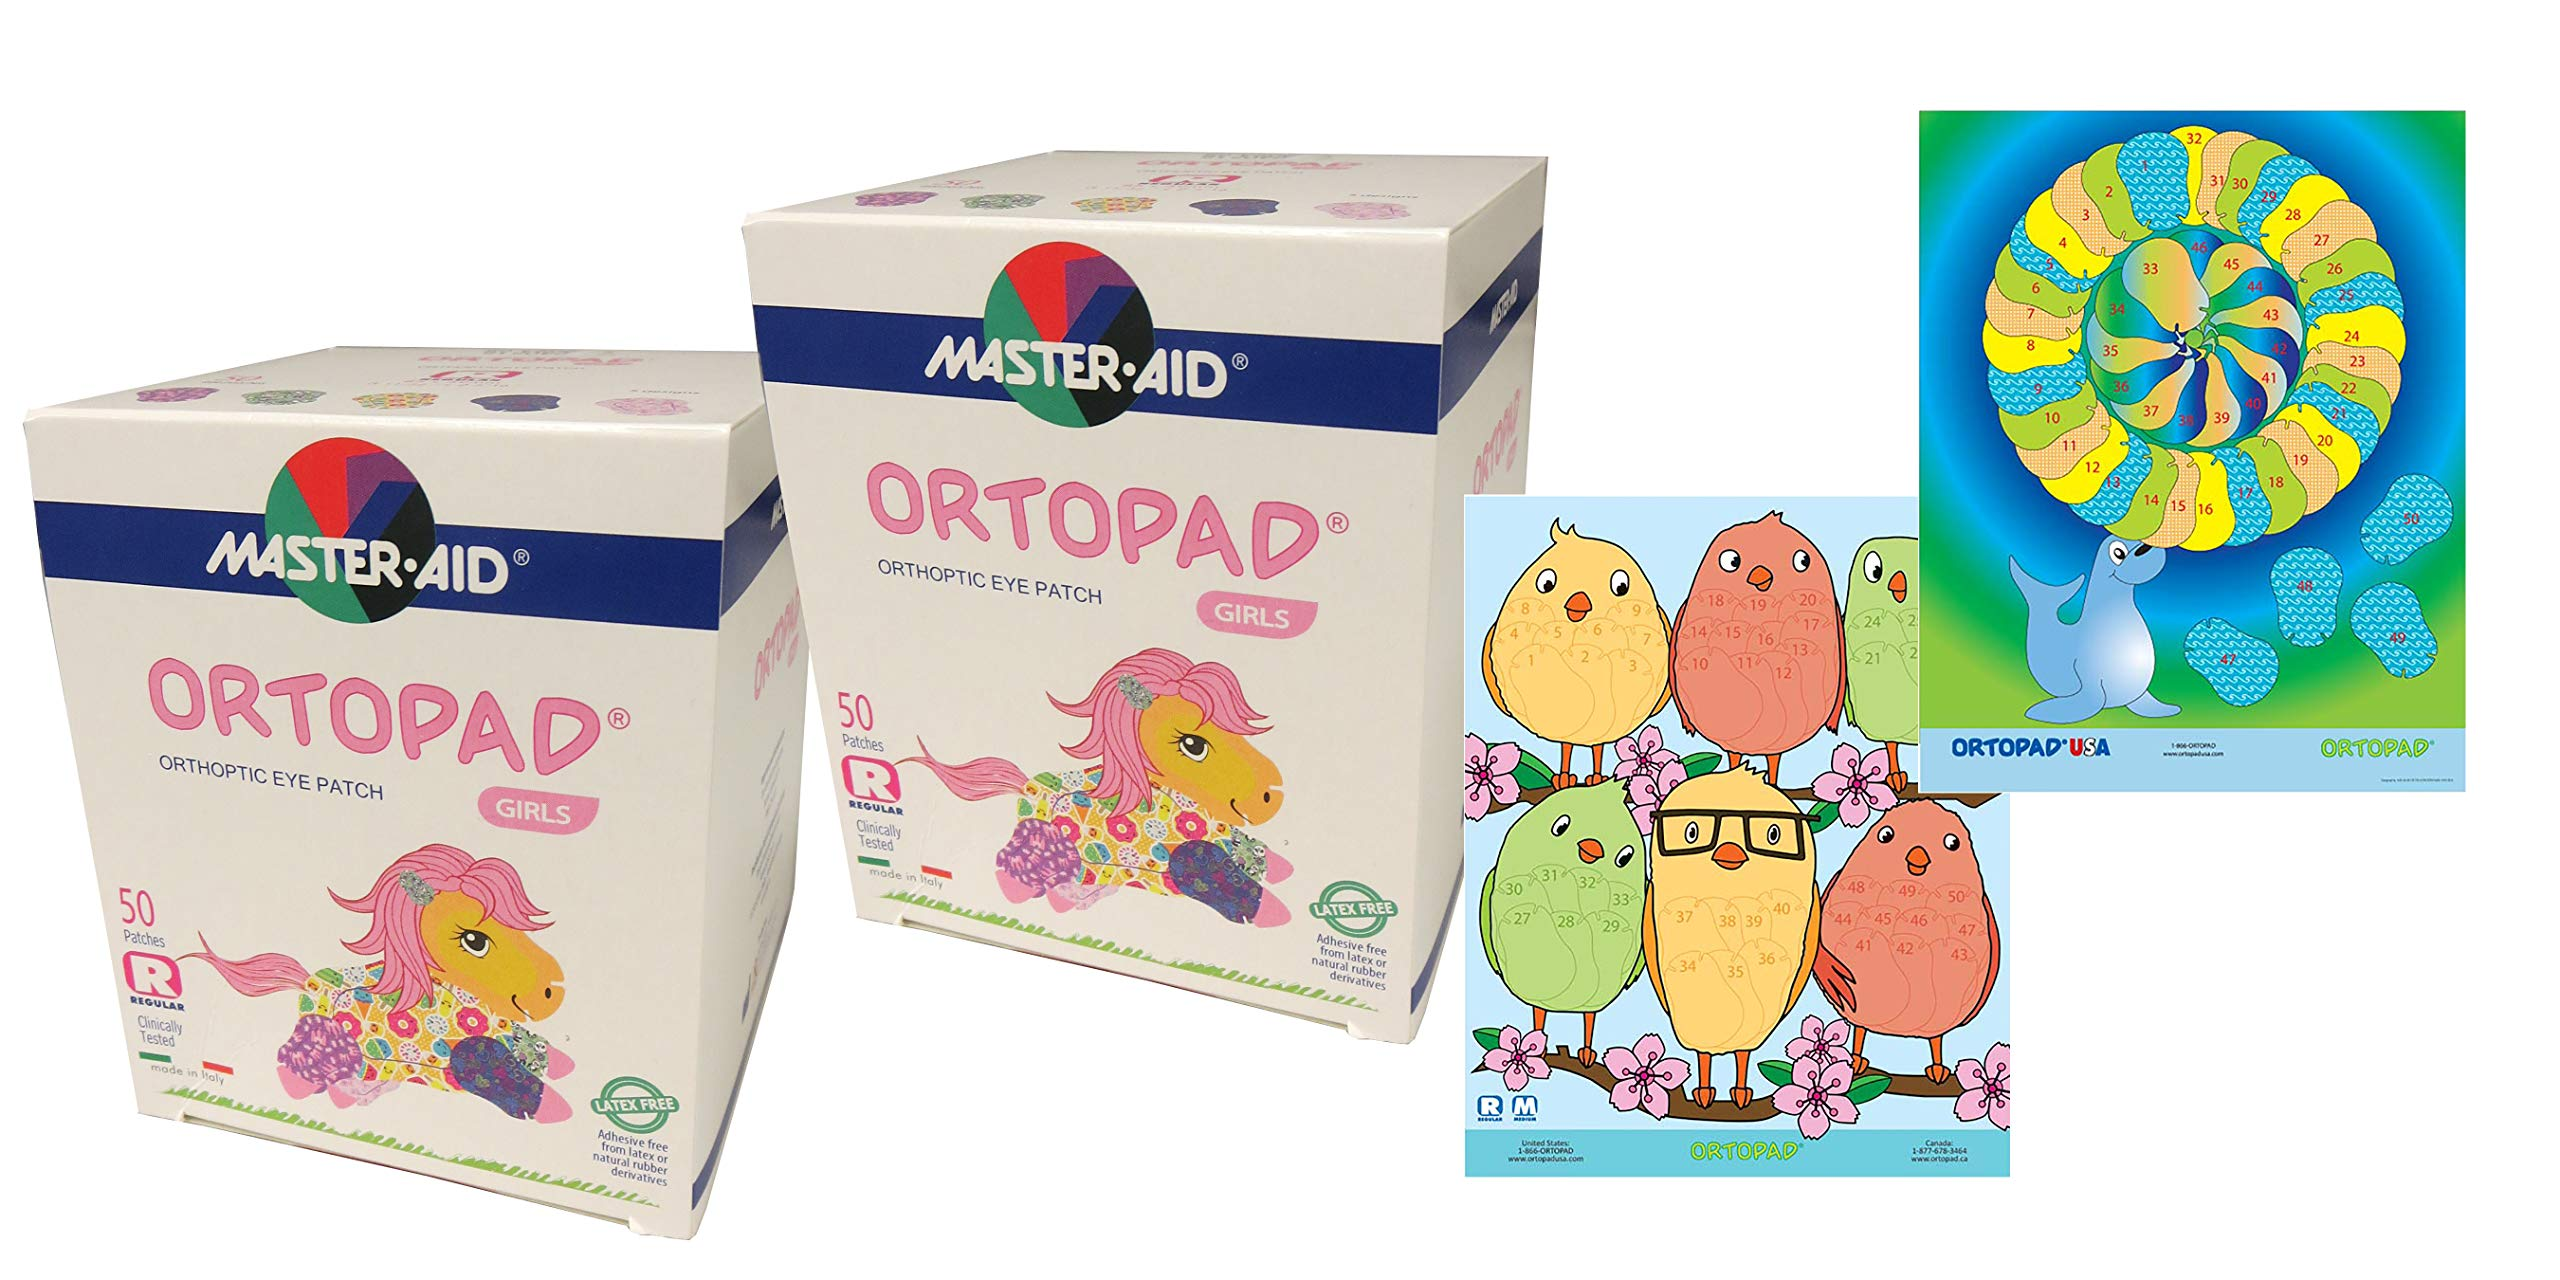 Ortopad® Bamboo 100-Pack for Girls, Adhesive Eye Patches, Regular Size, 2 Boxes and 2 Posters by Ortopad